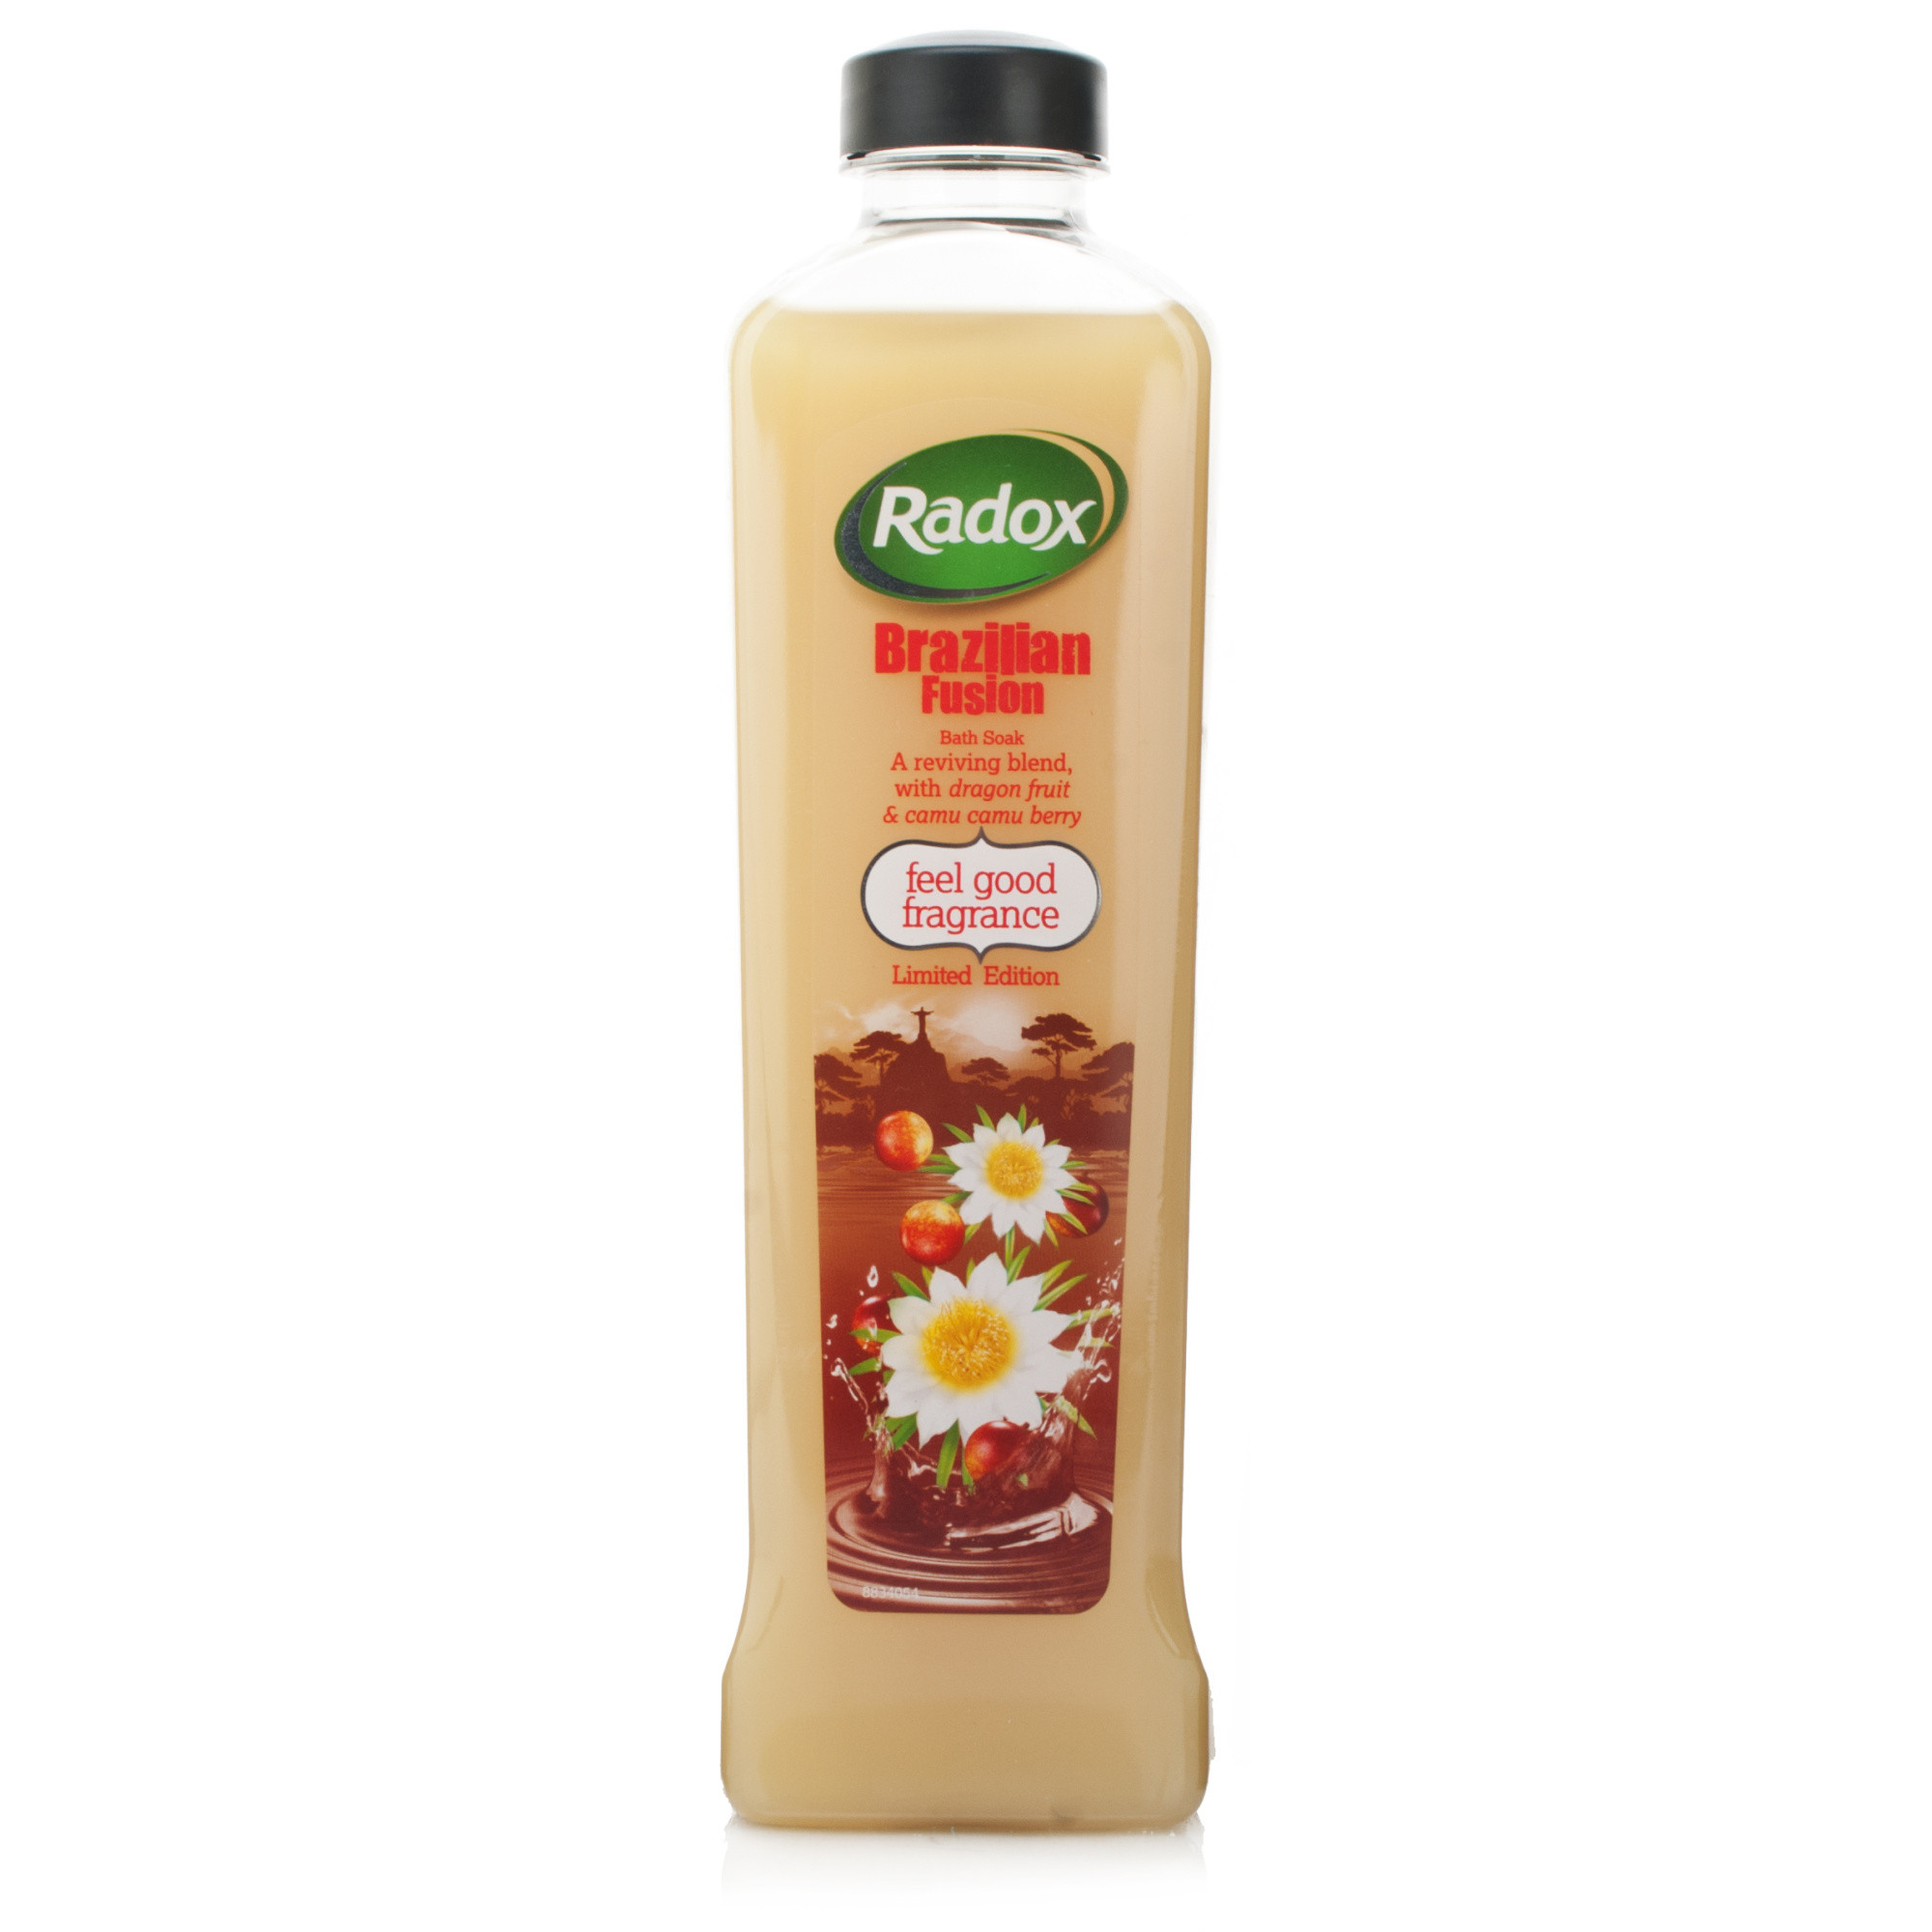 Radox Brazilian Fusion Limited Edition Bath Soak